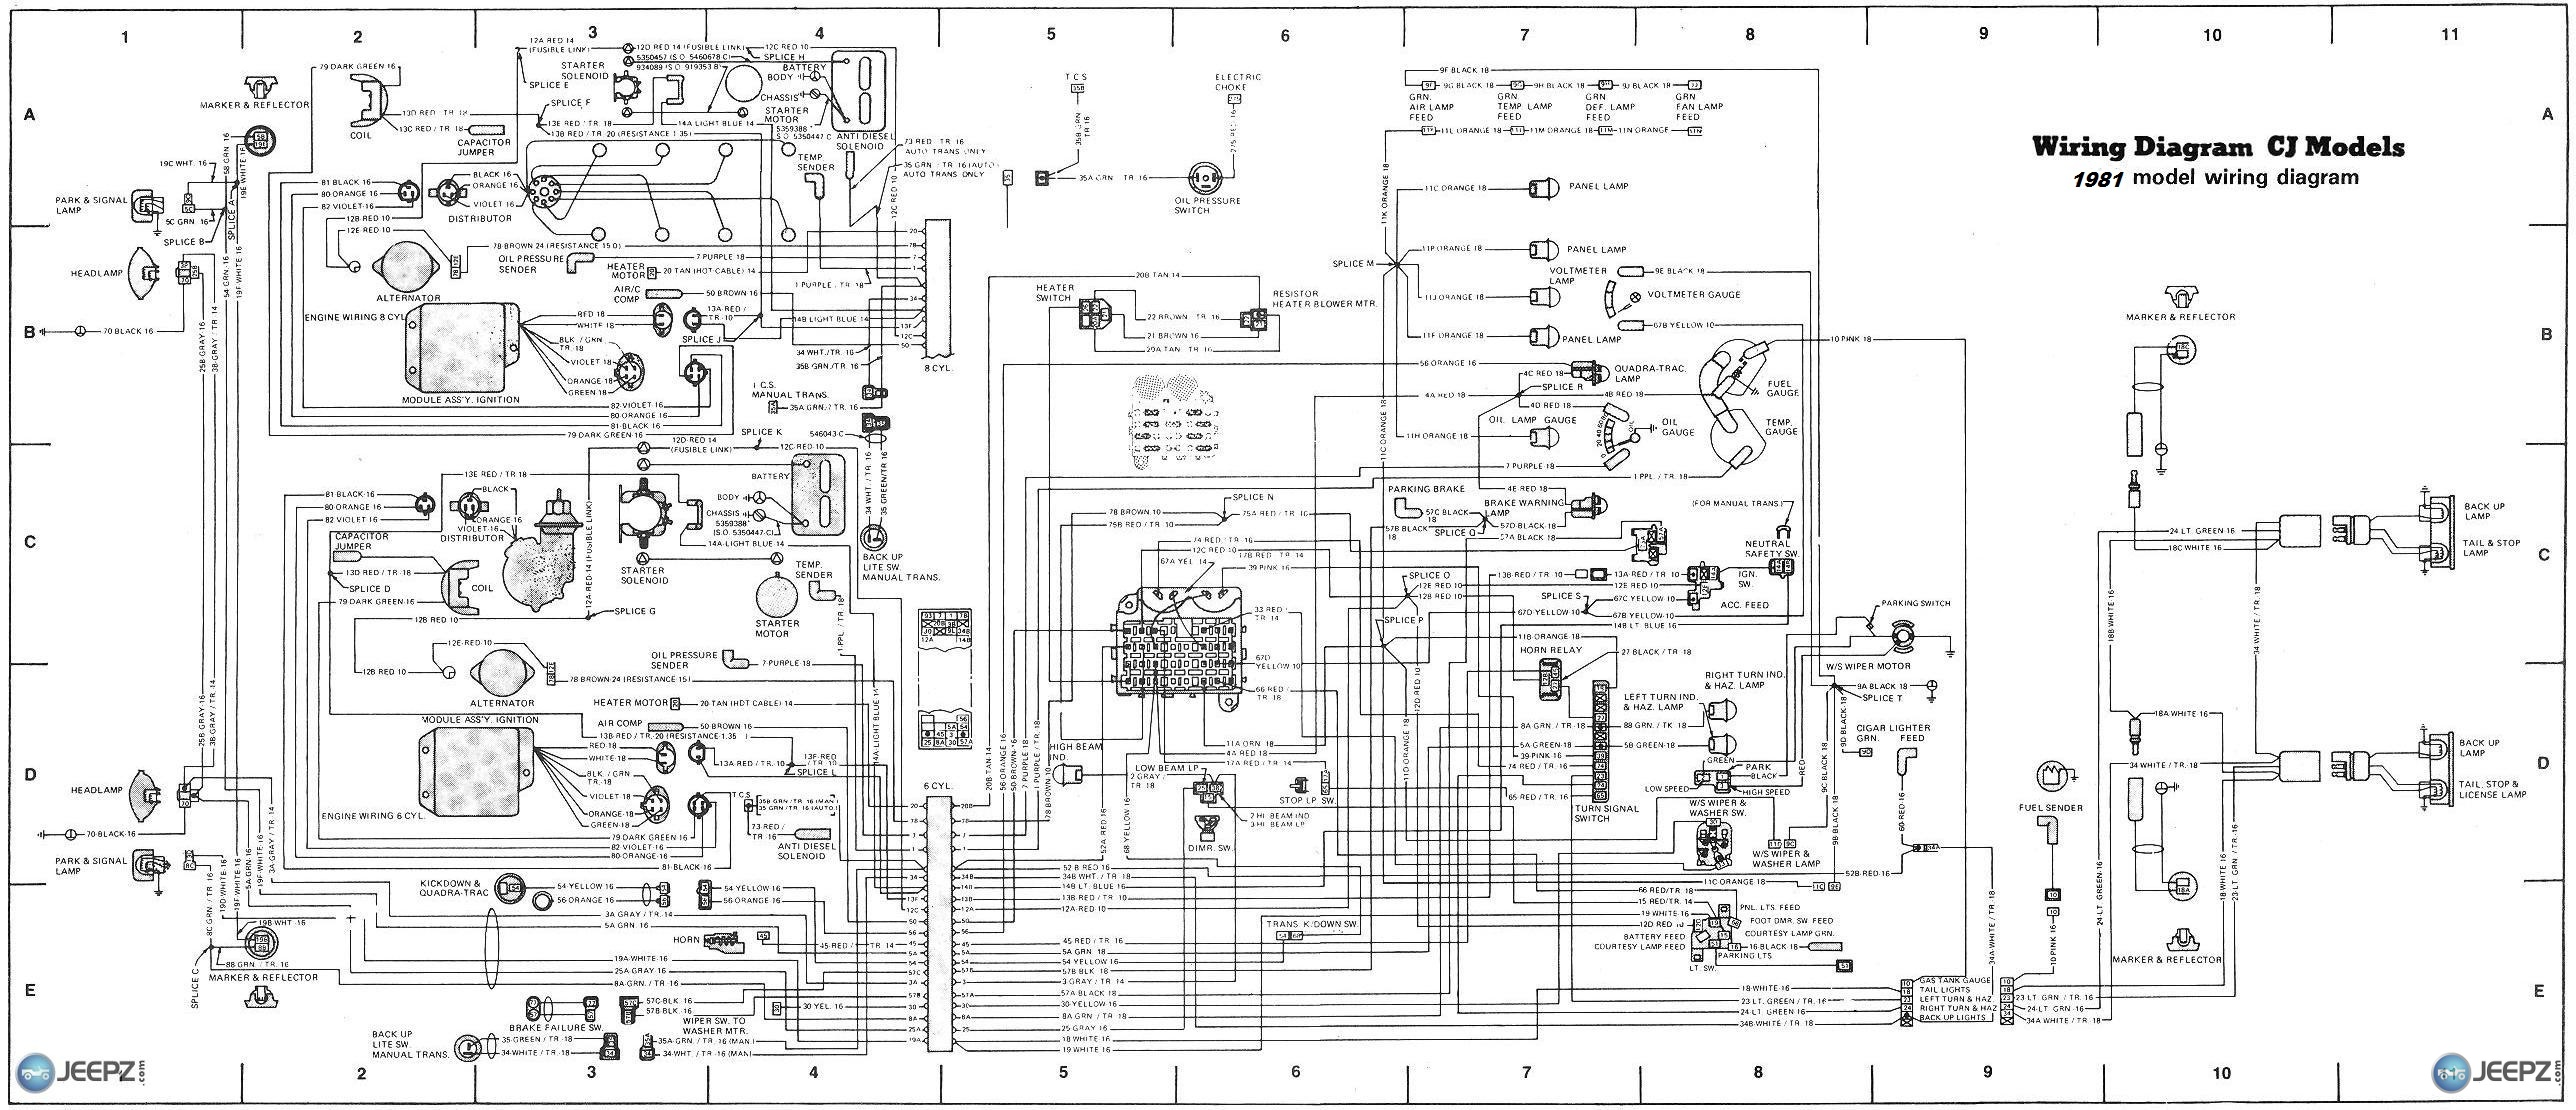 84 cj7 wiring diagram just wiring data rh ag skiphire co uk